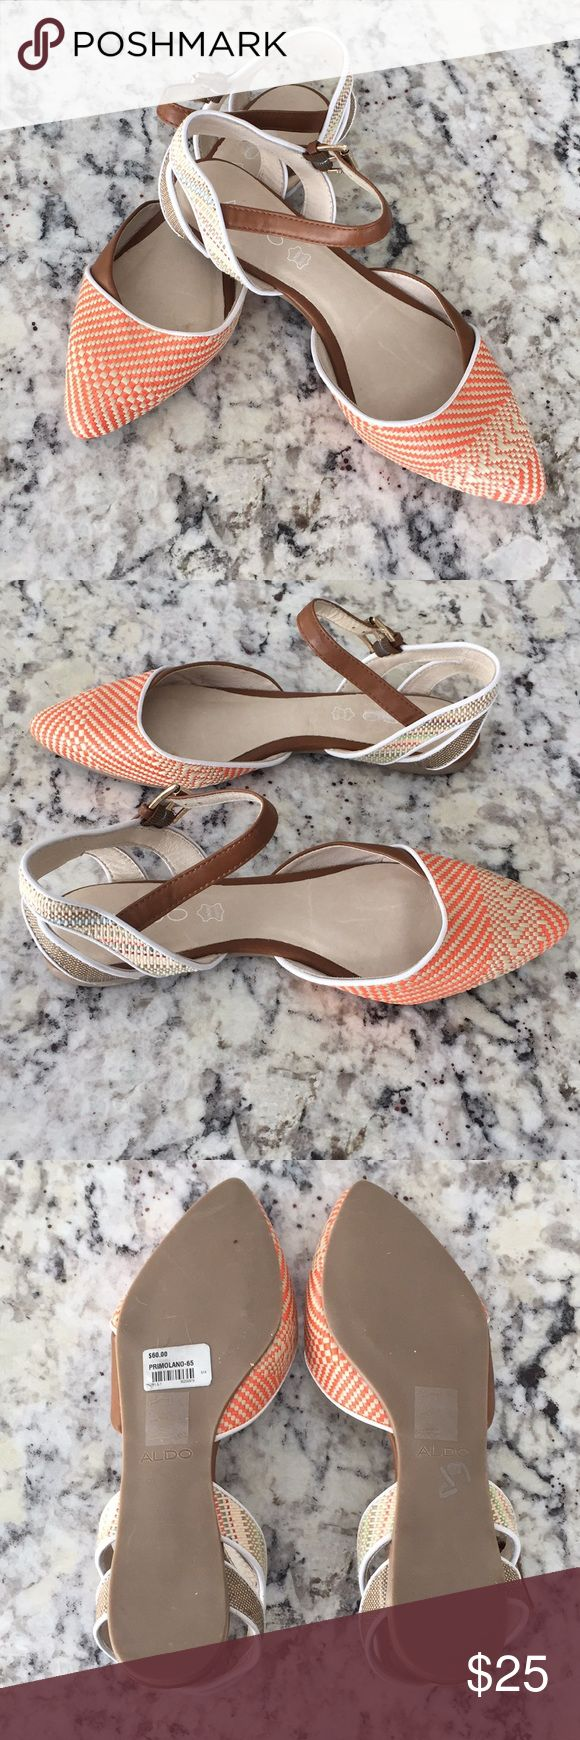 Aldo Primolano Flats- NWOT These adorable flat sandals are perfect for skirts and more! Canvas toe with a straw like appearance! Orange and tan in color! Condition is NWOT, no box sorry! Aldo Shoes Flats & Loafers